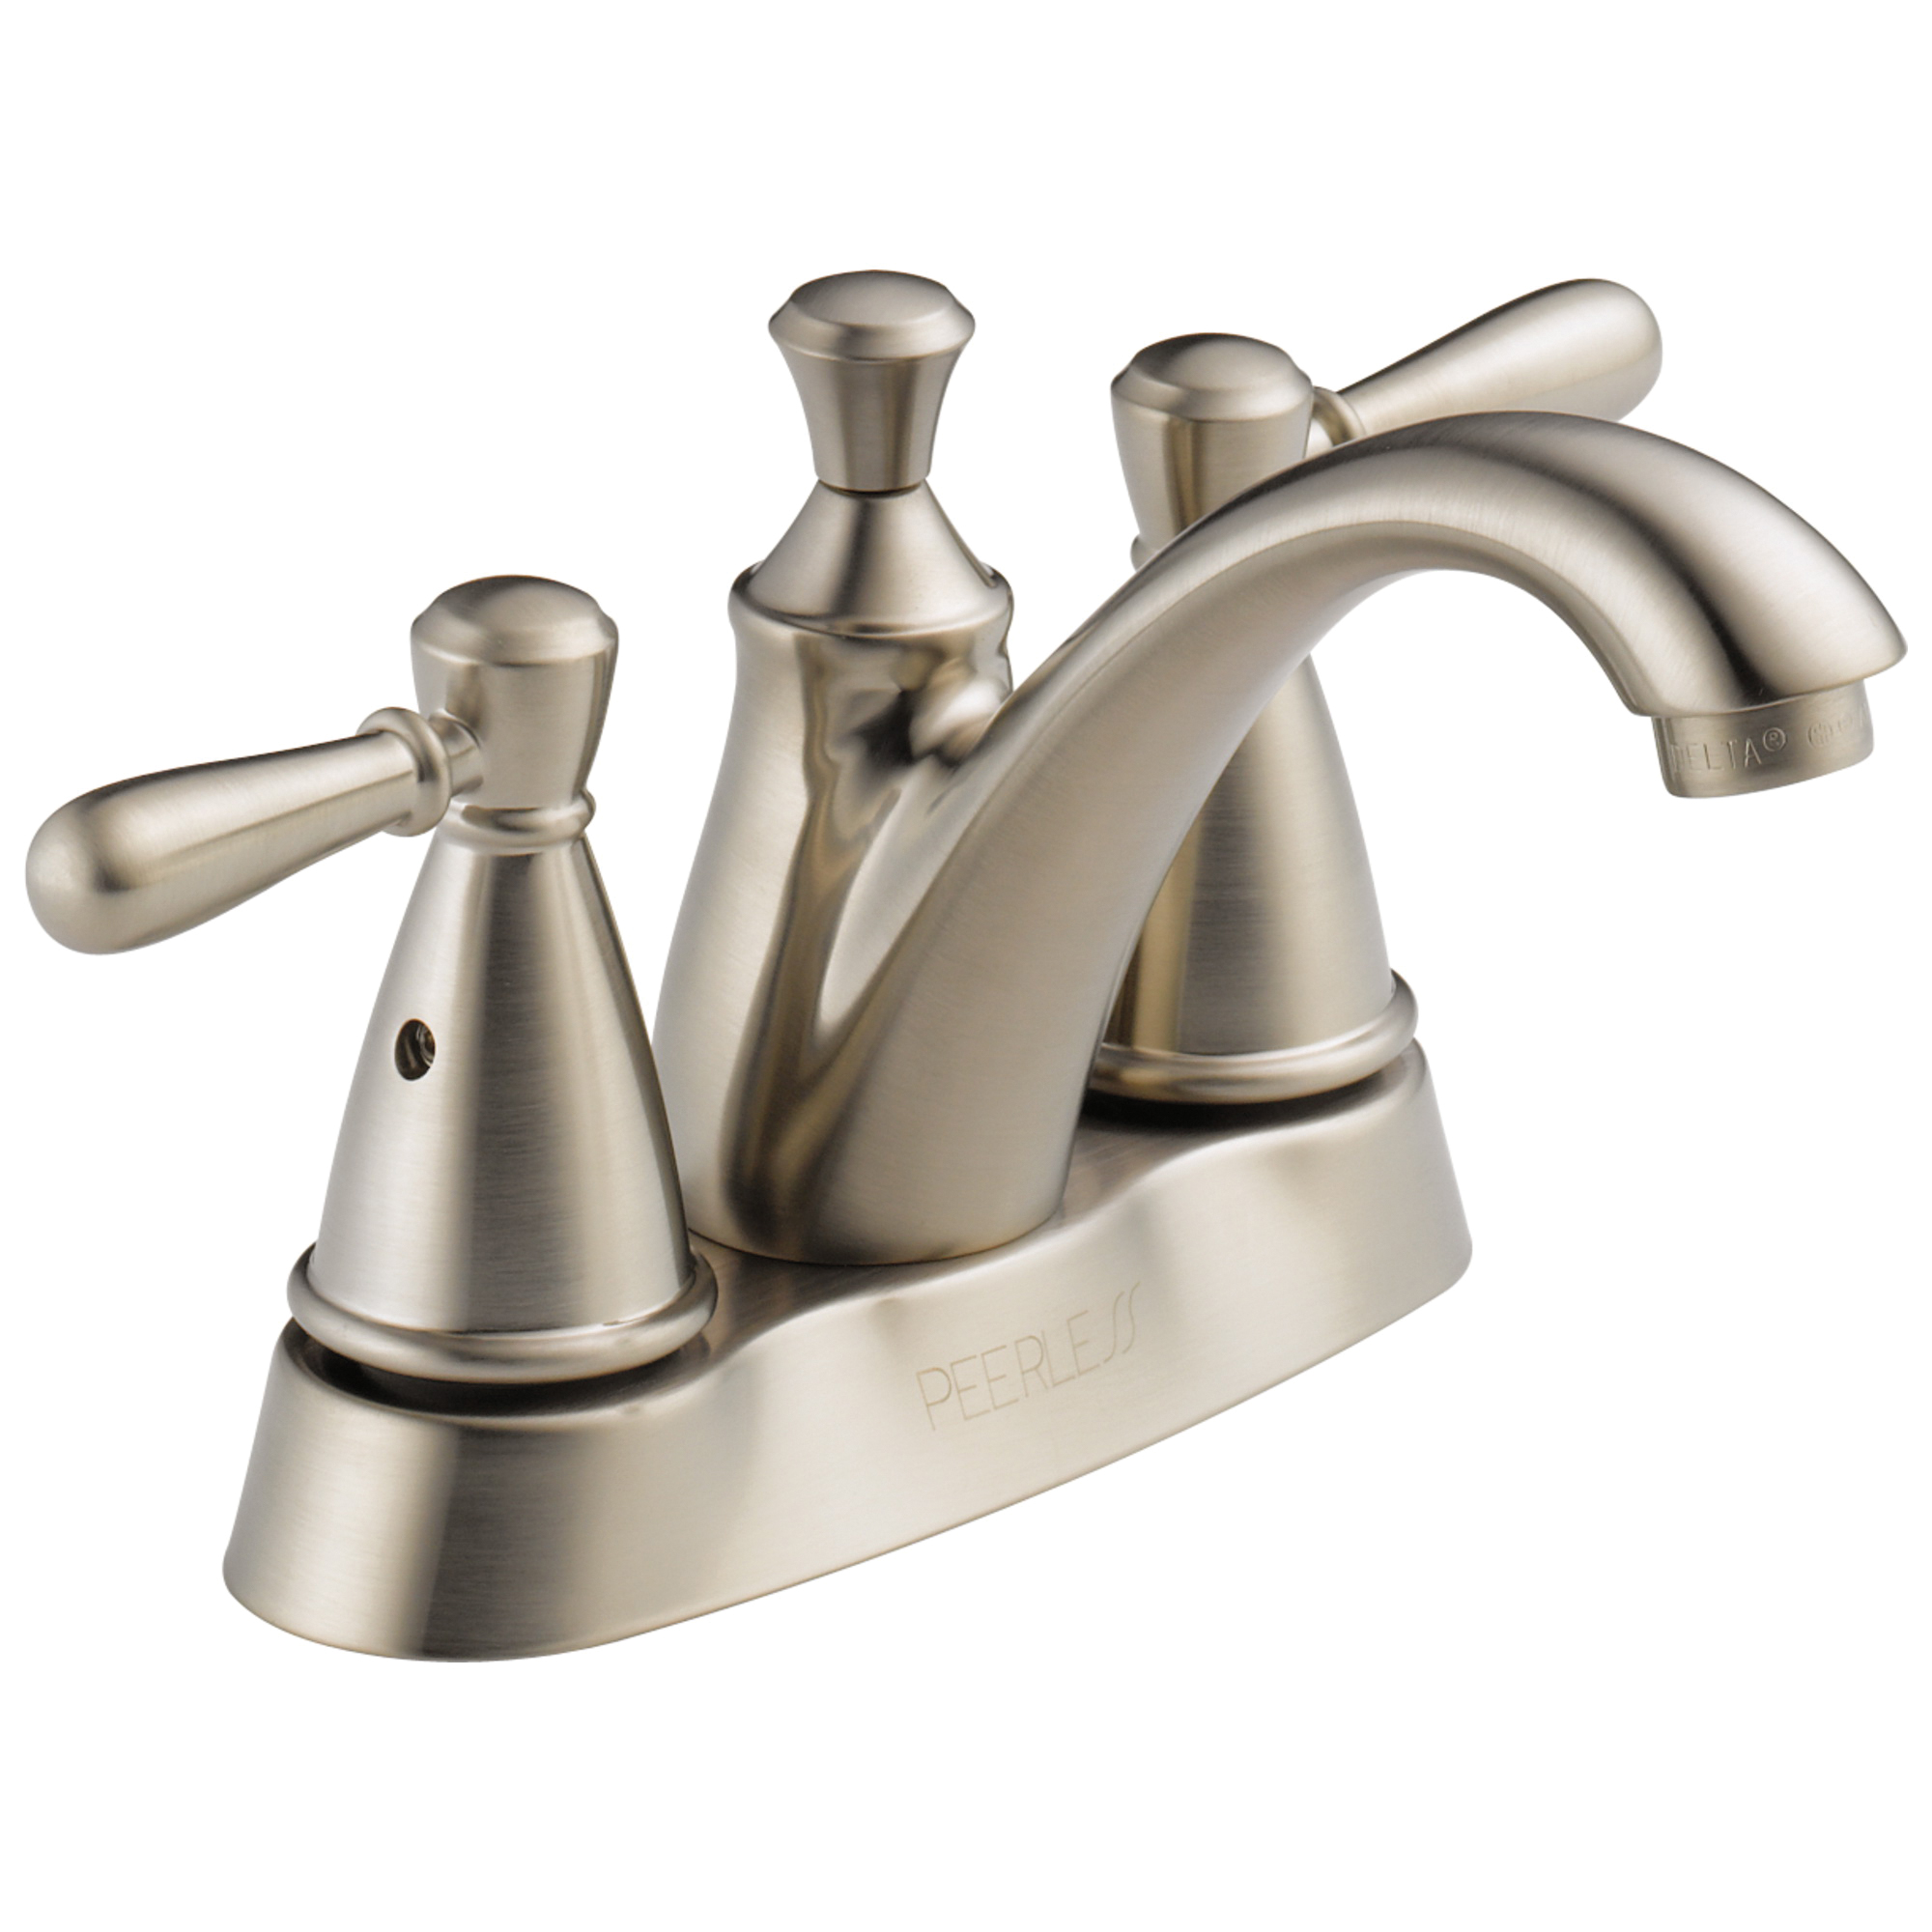 Peerless® P99674LF-BN Centerset Lavatory Faucet, Apex, Brushed Nickel, 2 Handles, Plastic Pop-Up Drain, 1.2 gpm